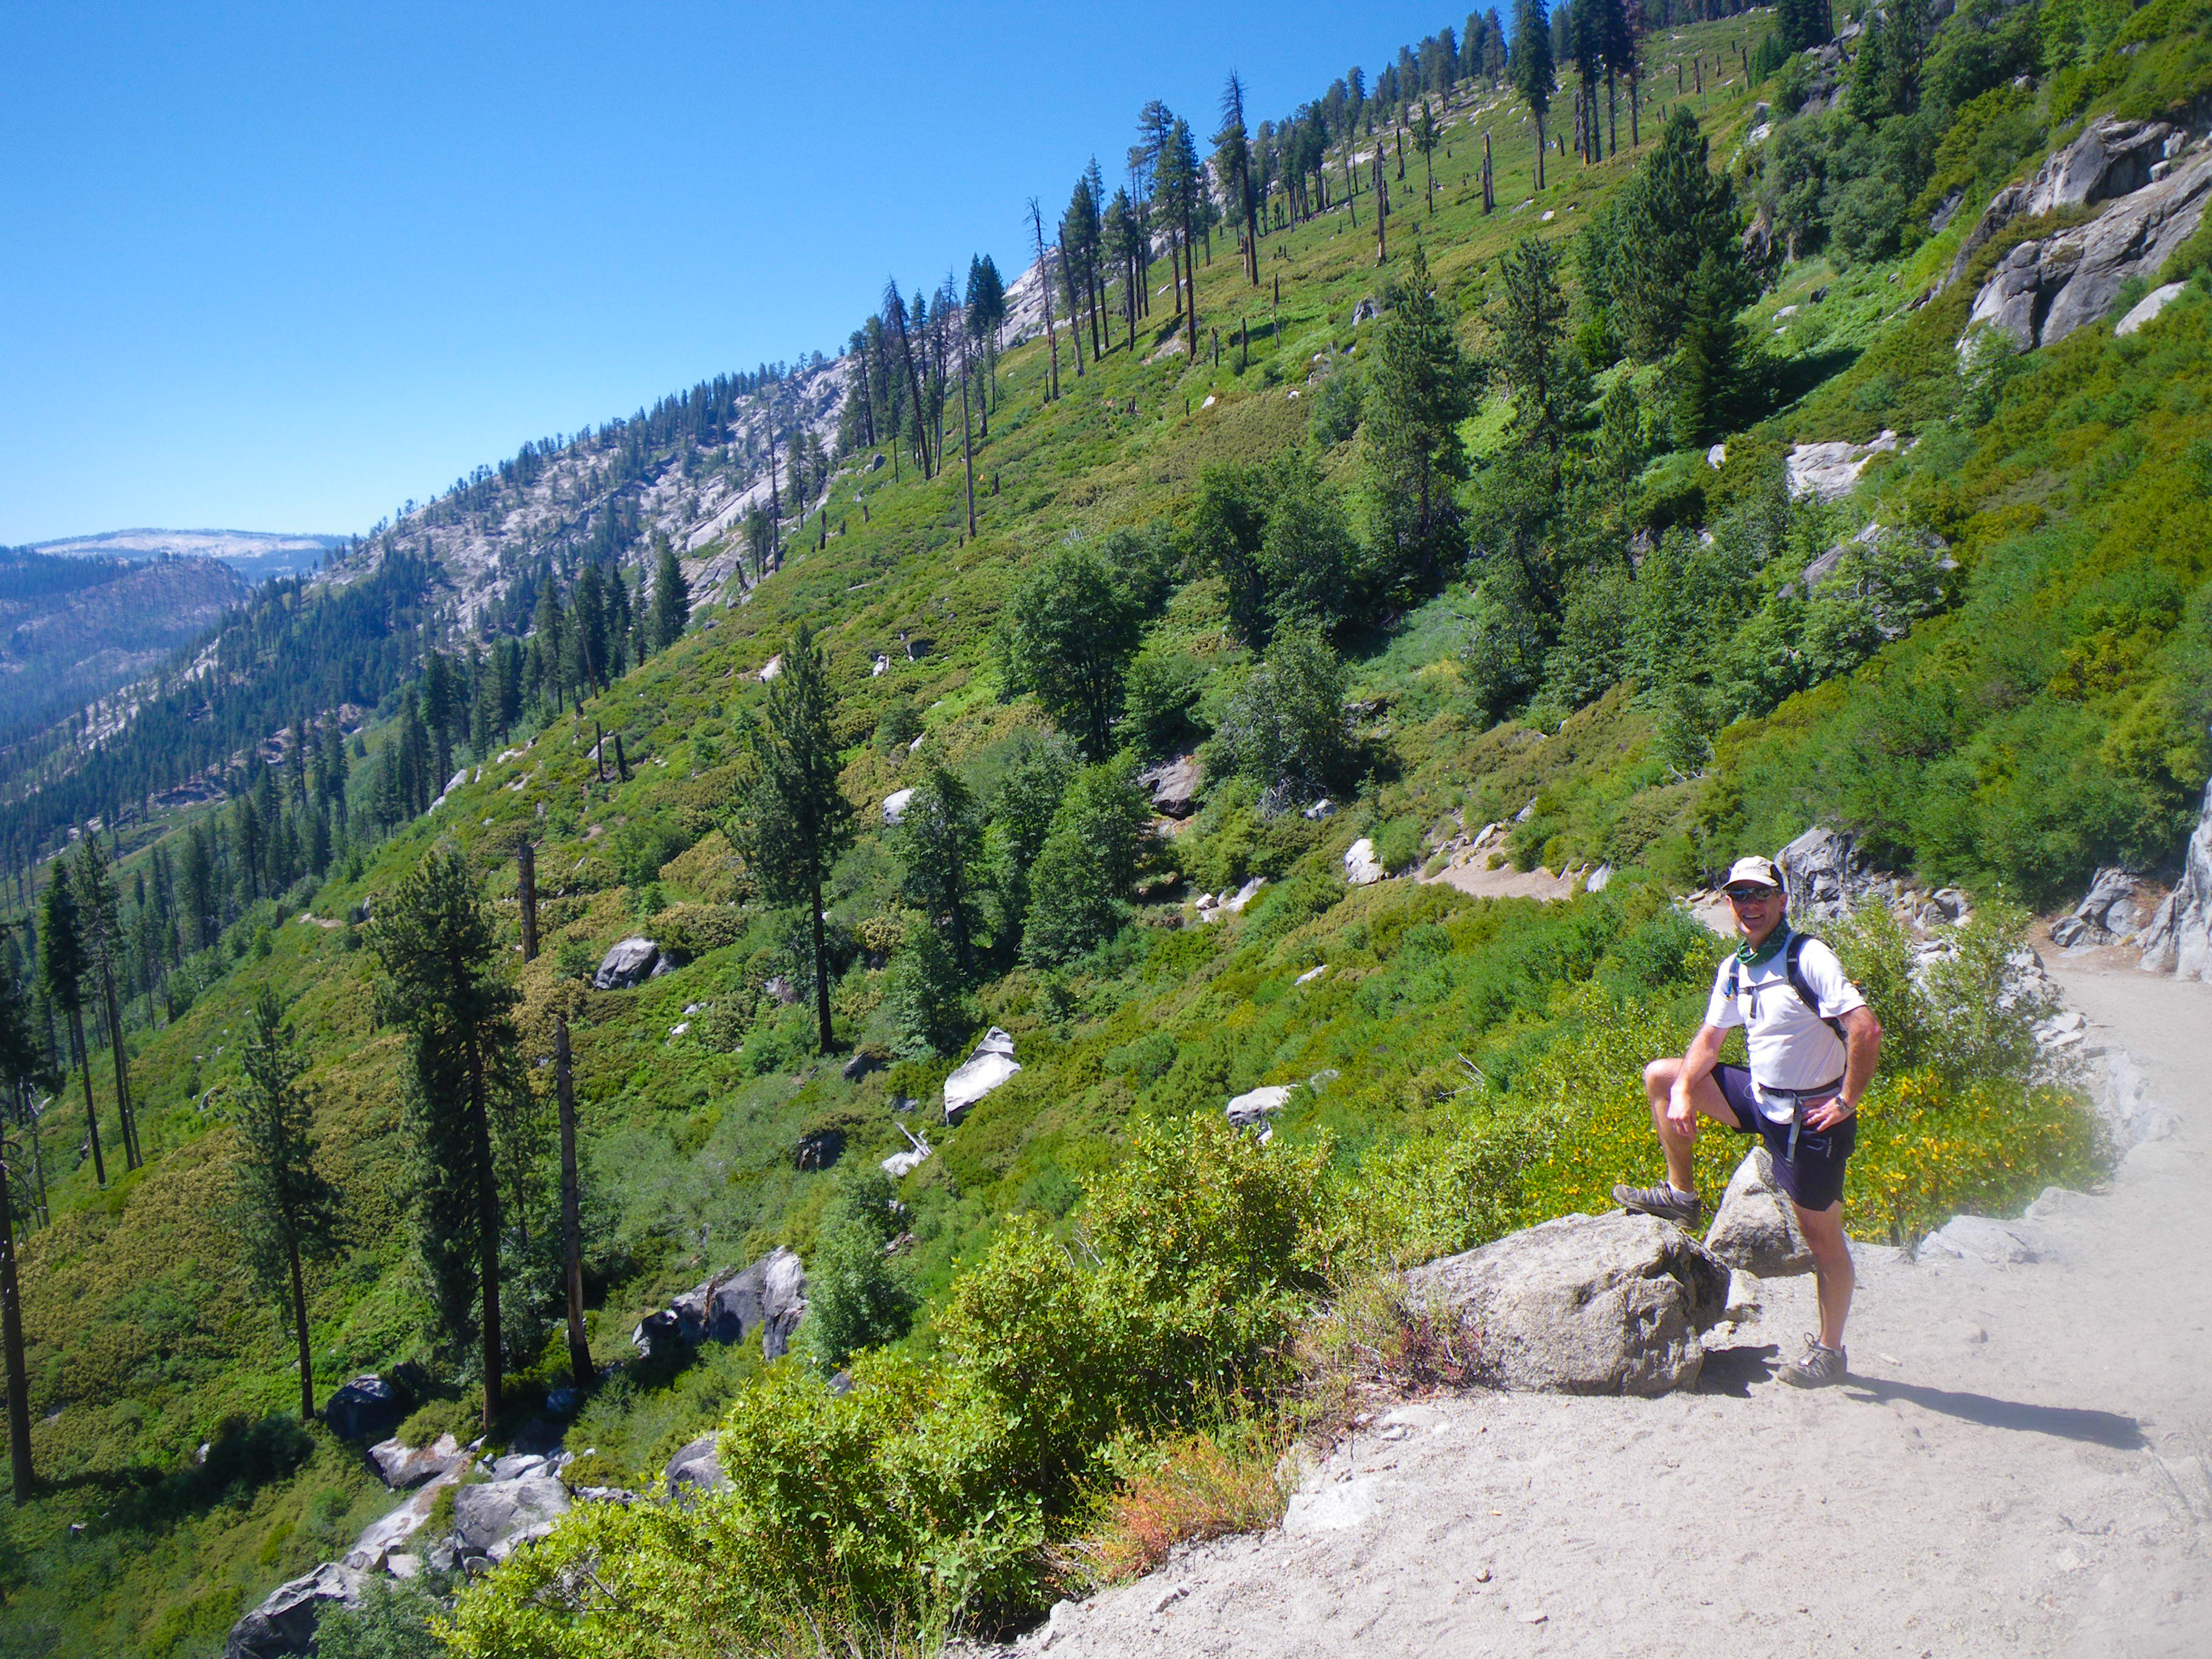 A Yosemite 5 Day Guide Run The Valley To The Peaks The